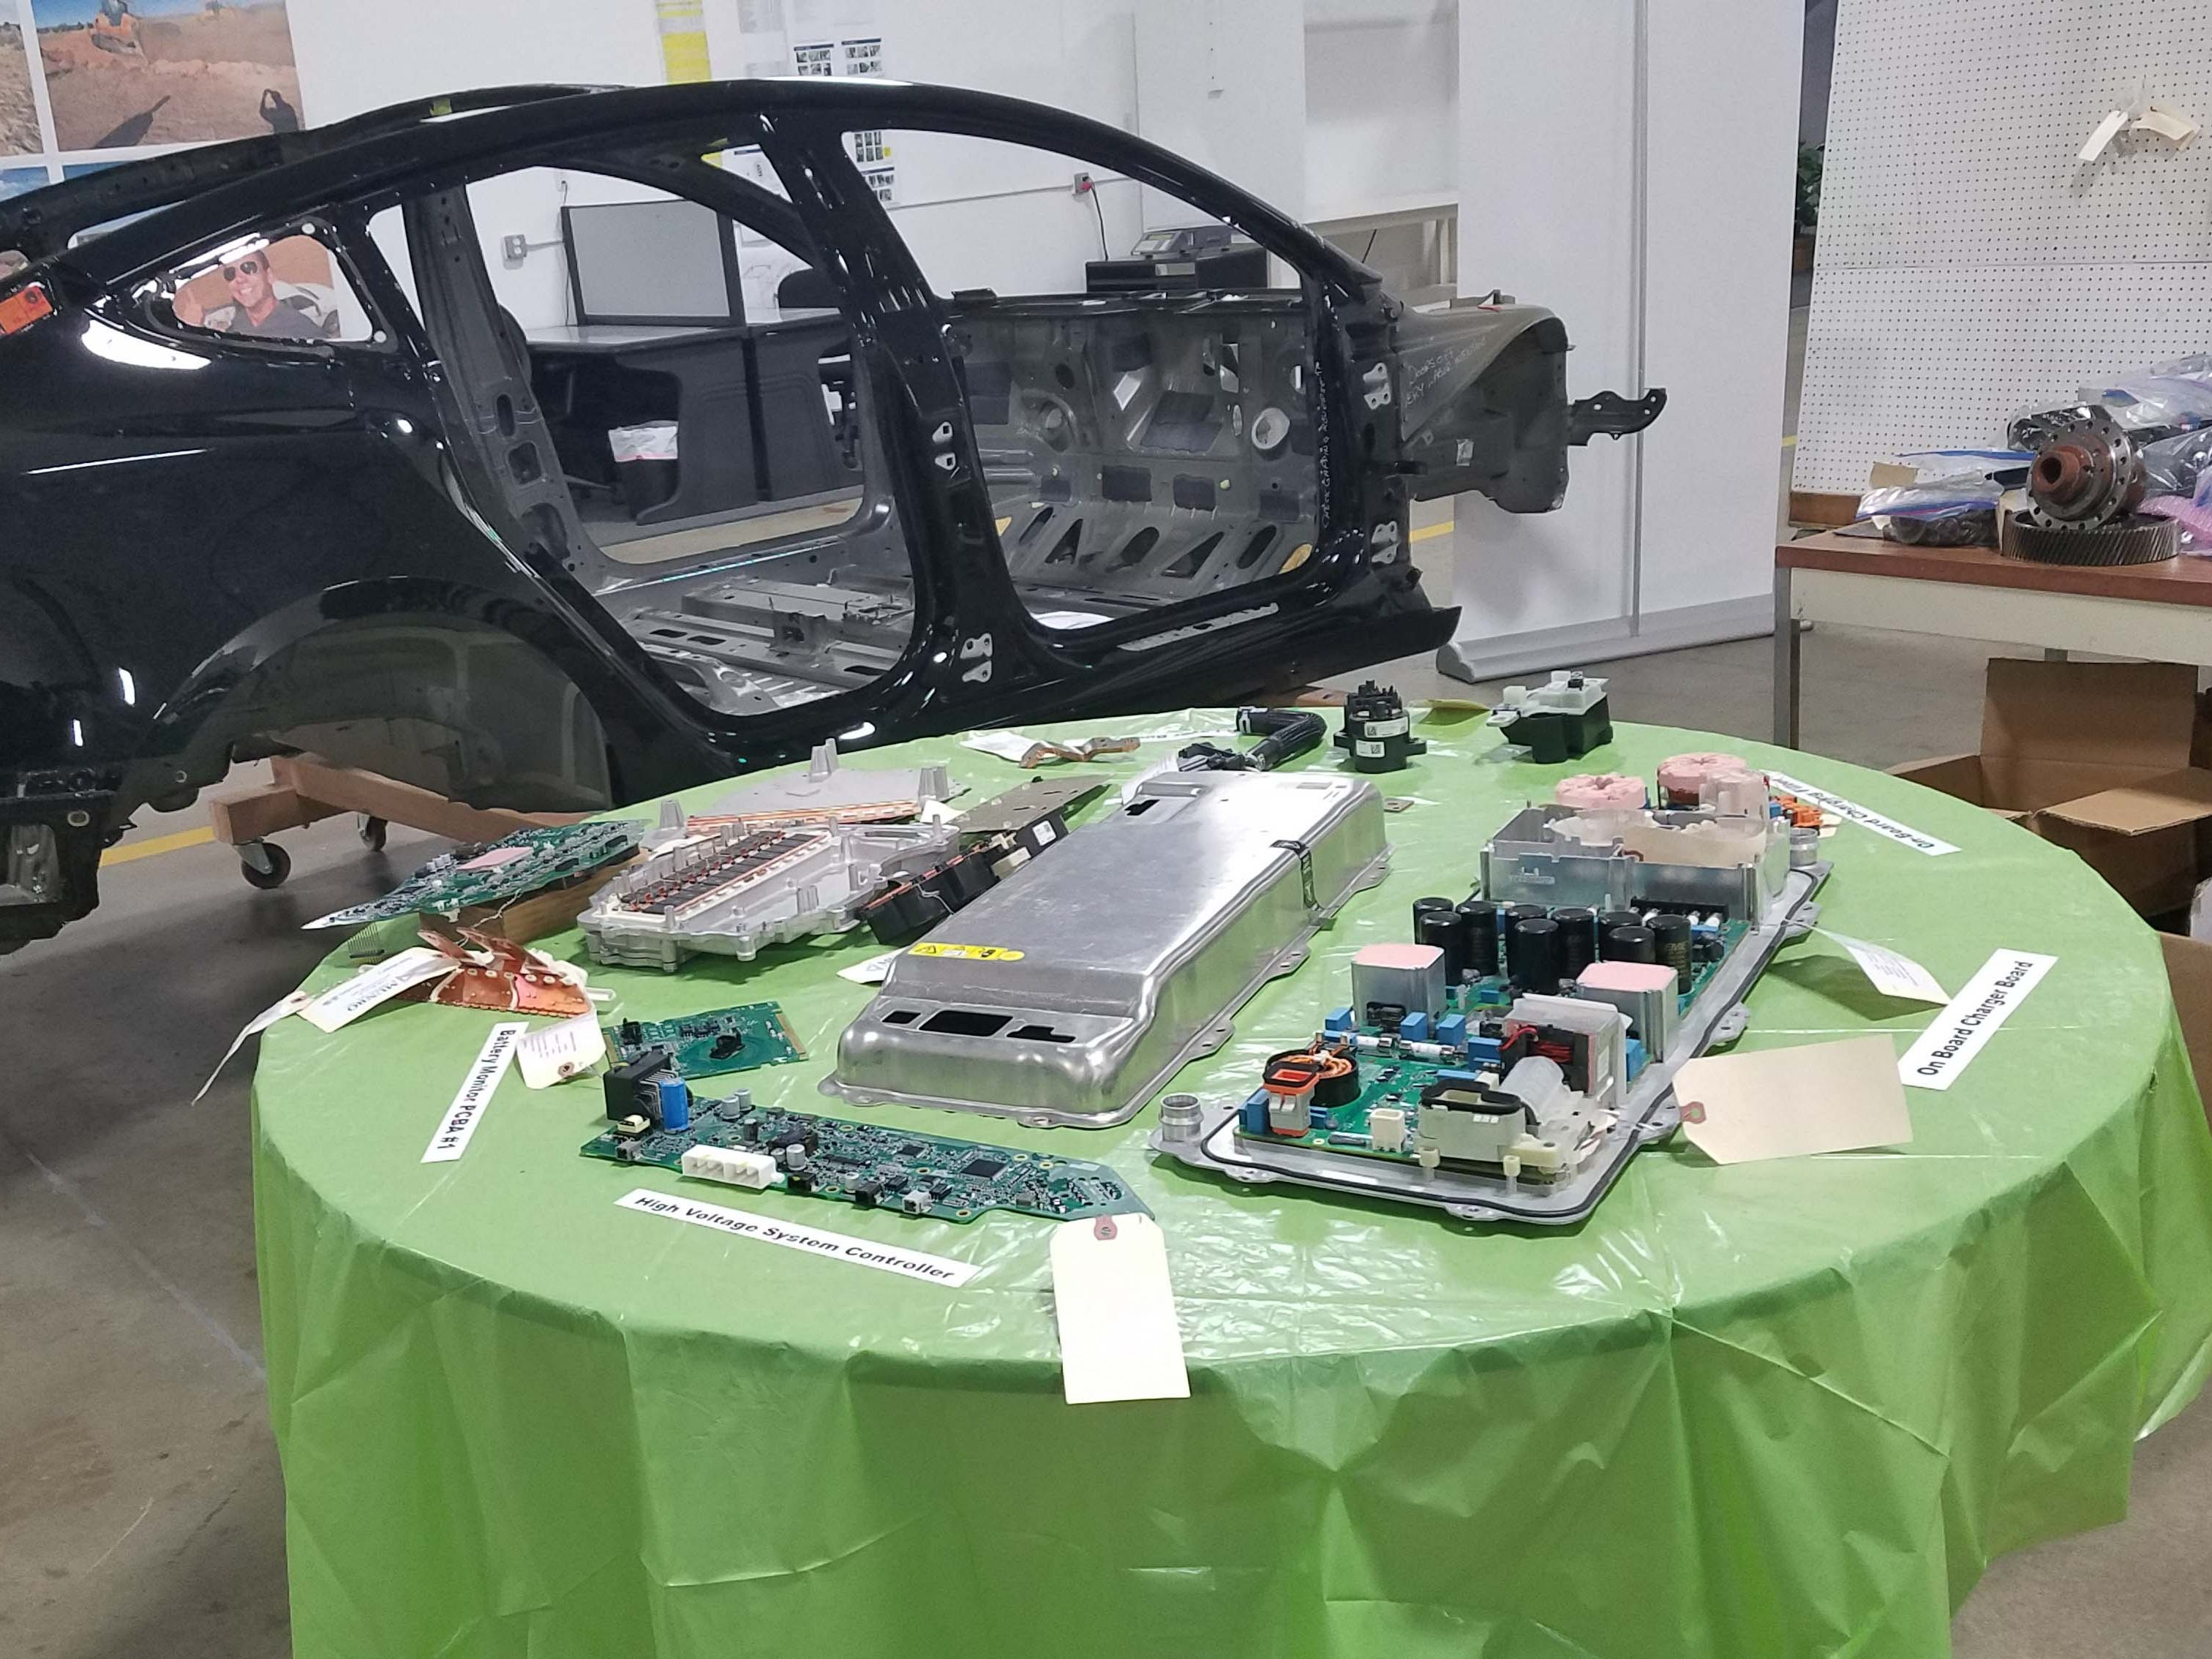 Munro & Assoc. of Auburn Hills dis-assembled a Tesla Model 3 and found its electronic systems (foreground) to be the most-advanced in the auto industry.